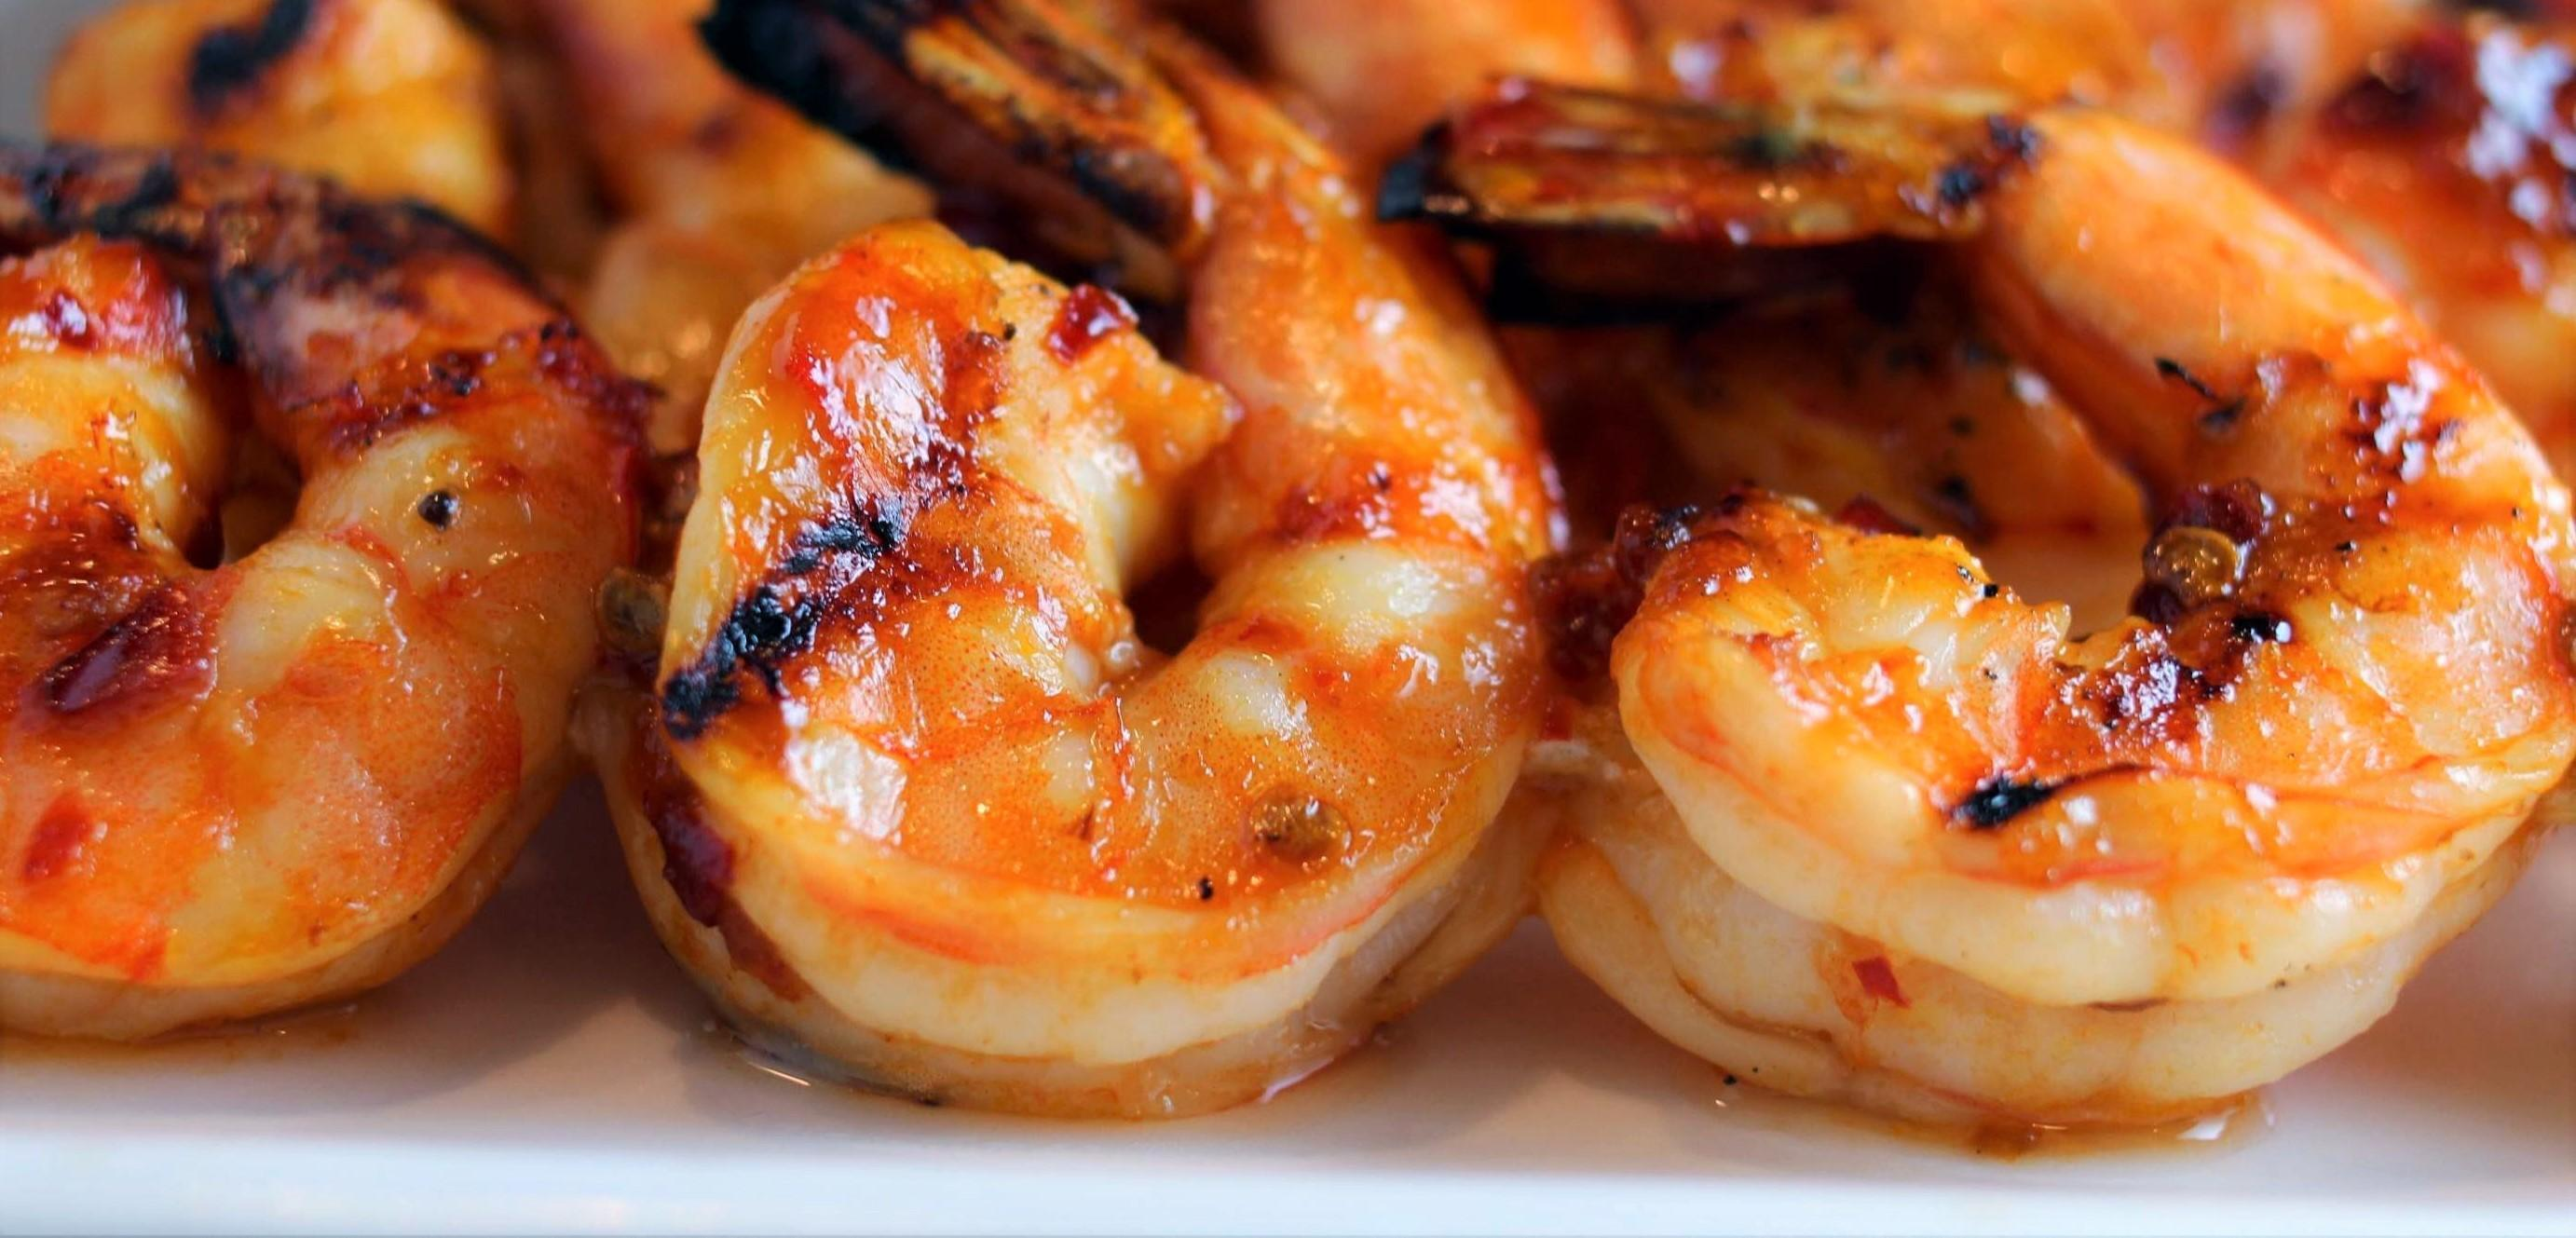 BBQ 101: Whiskey BBQ Shrimp Barbecue Recipe